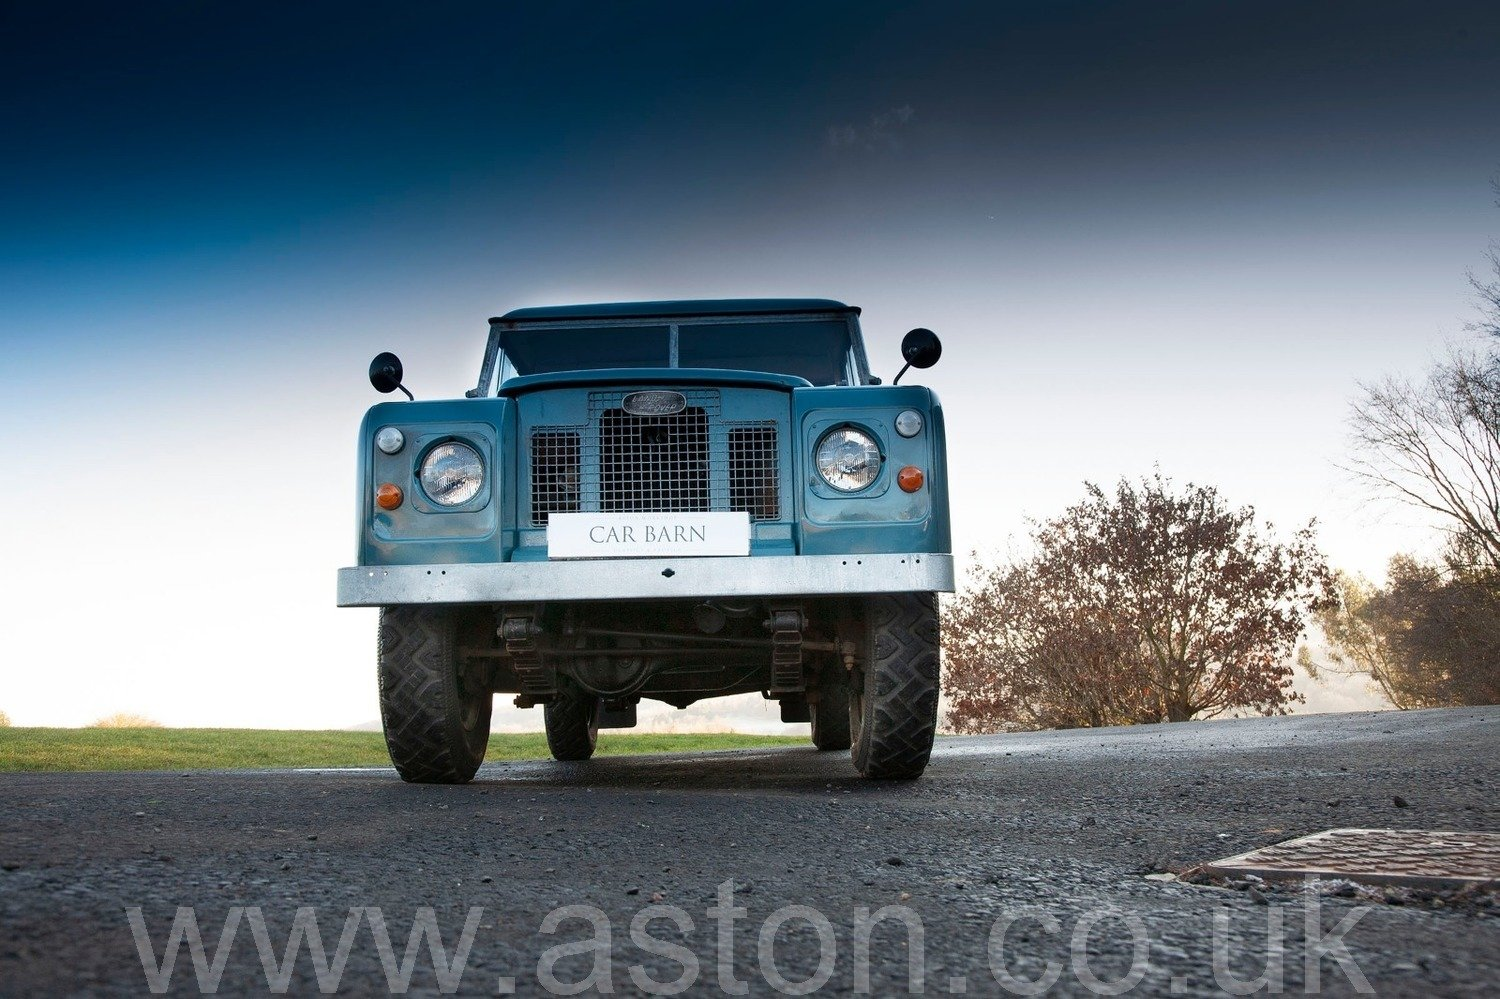 1969 Land Rover Series 2A - Ex Raf SOLD (picture 6 of 6)